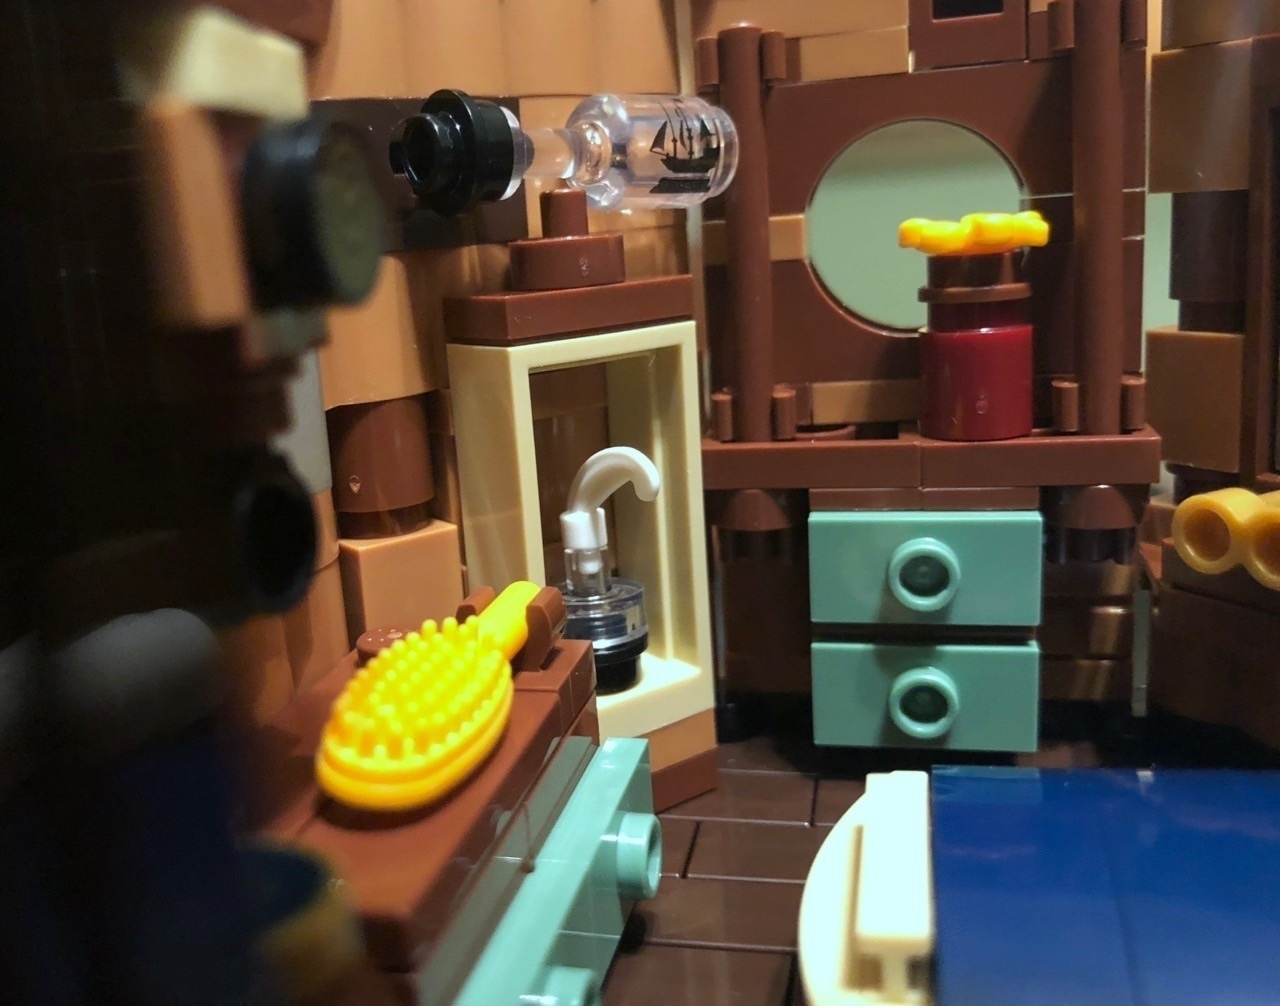 A close up photo of the Lego Tree House set, interior bedroom with bed right, dresser center back, and hairbrush seen at left. At above left, a small bottle with a ship printed on it, showing an imaginary ship in a bottle.